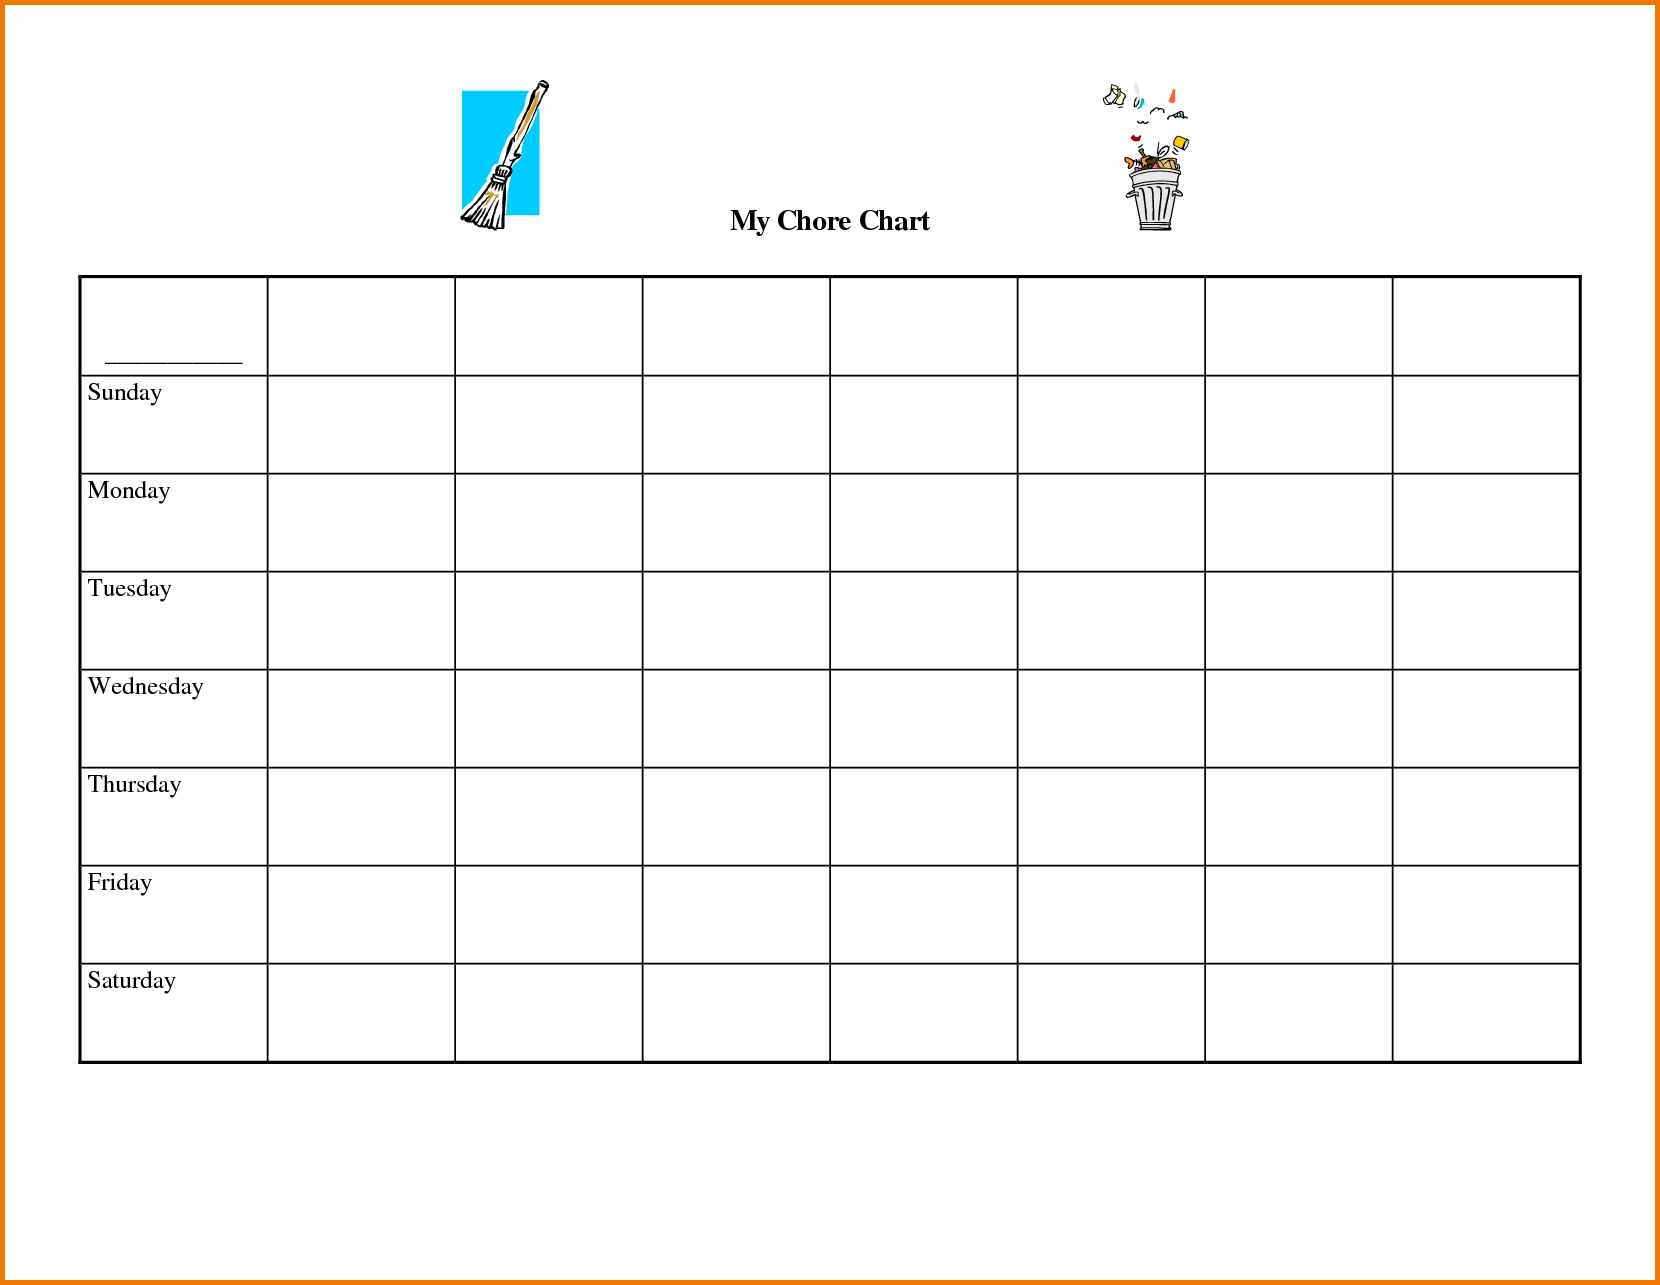 Free Printable Chore Chart Templates | Authorization Letter Pdf - Charts Free Printable